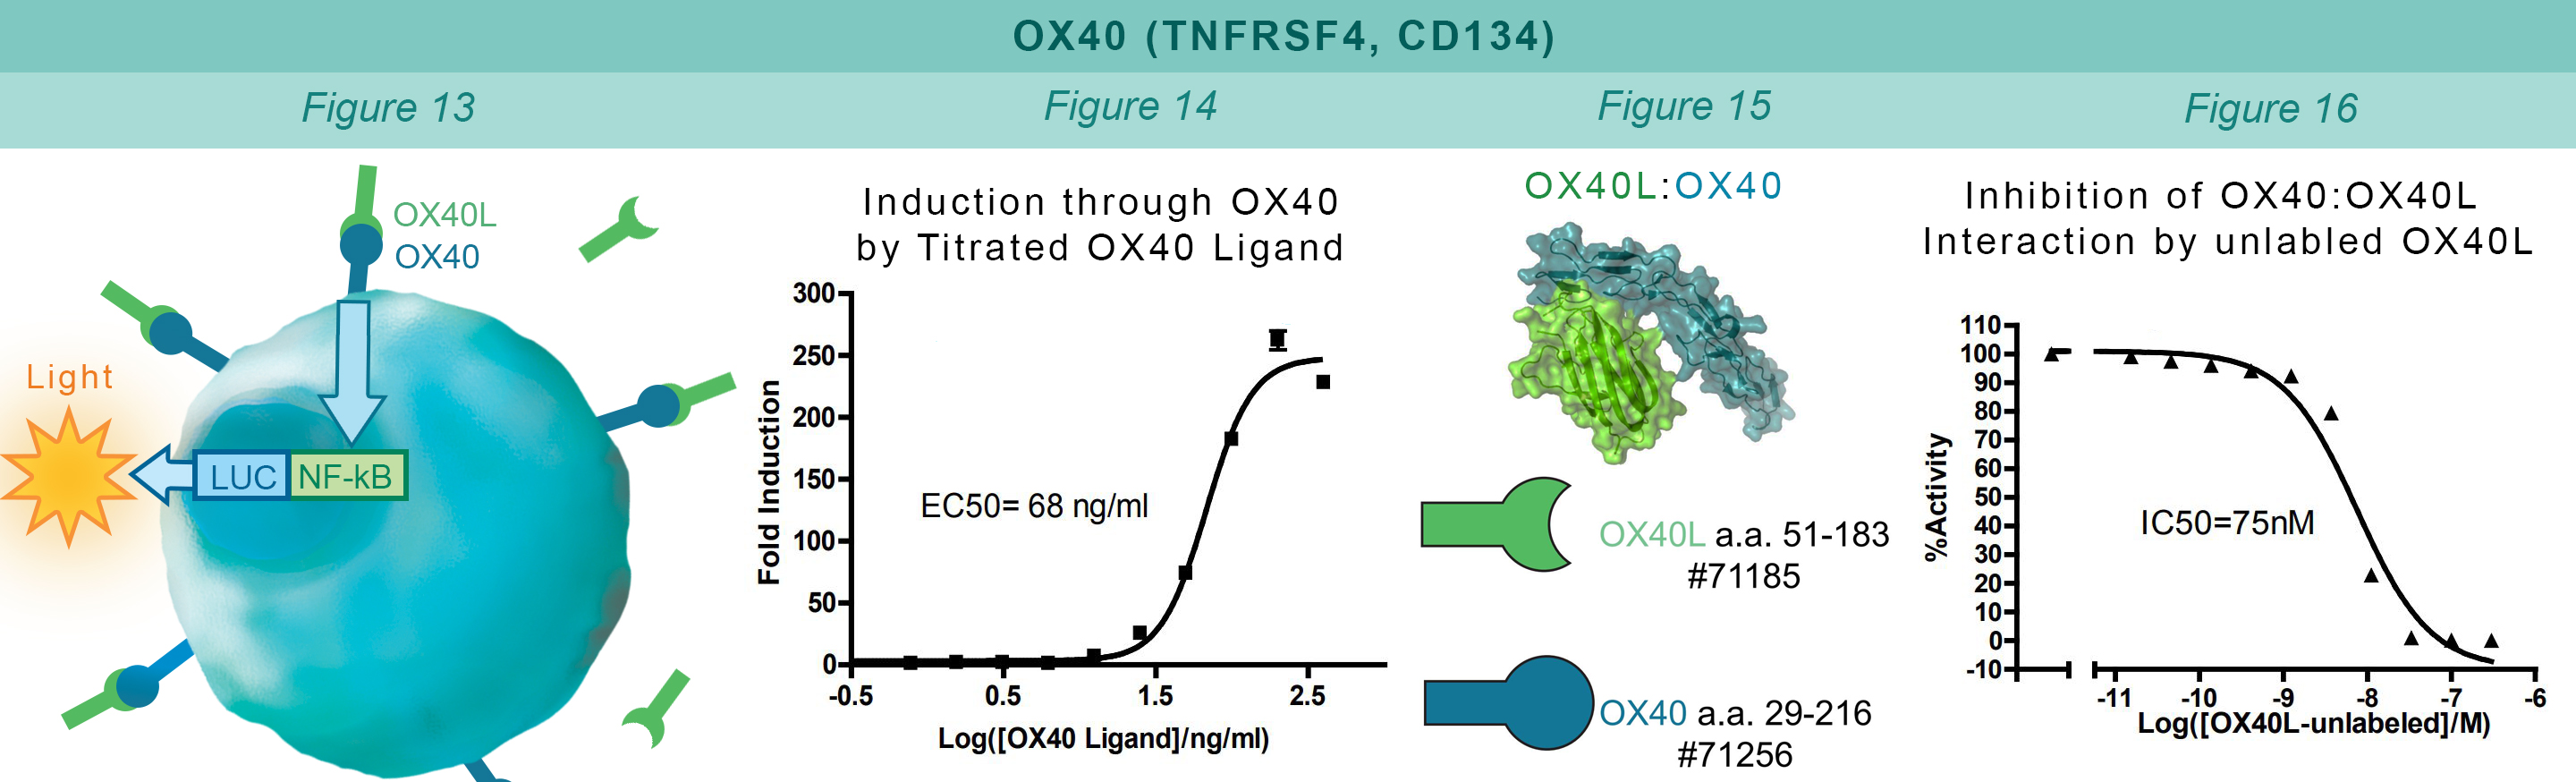 OX40 Cell Based Assay